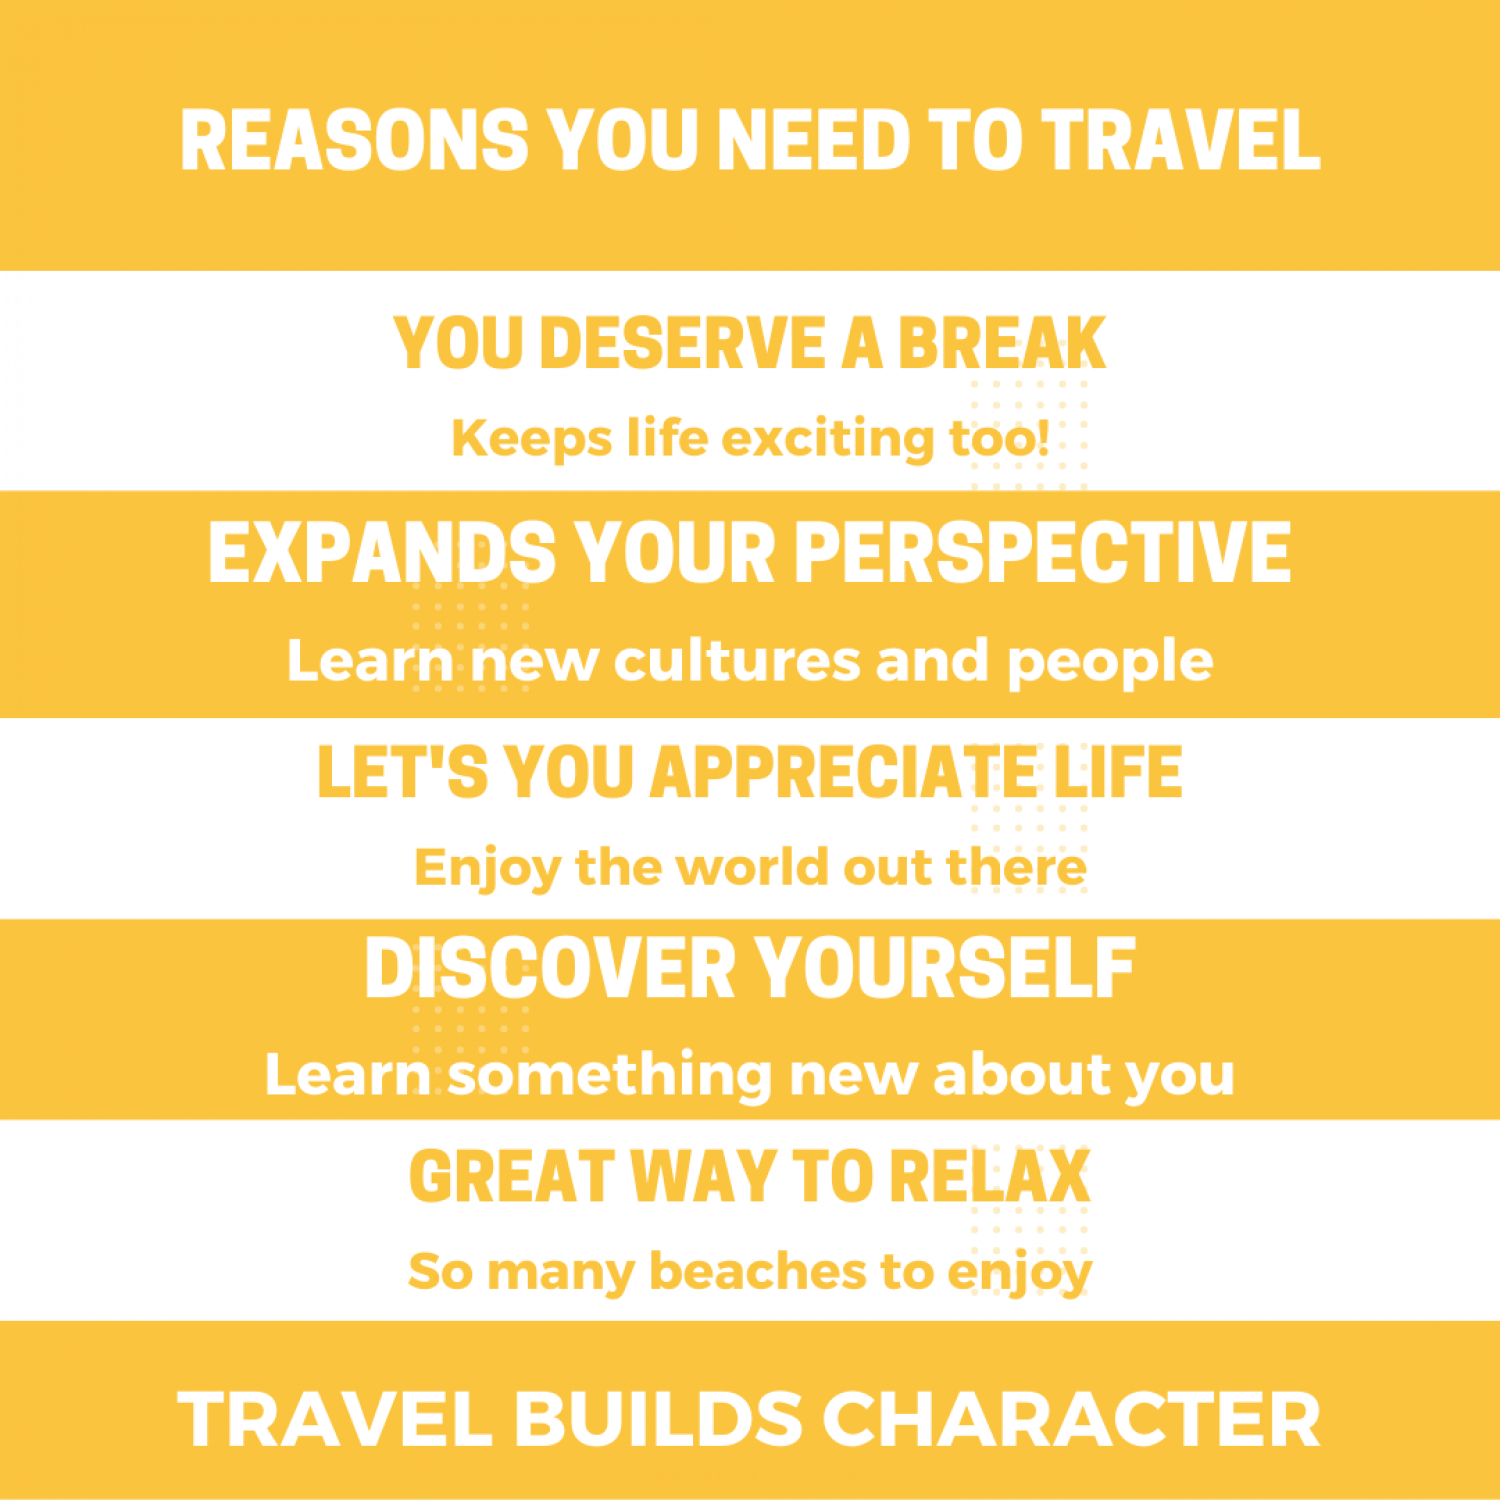 Reasons you need to travel Infographic